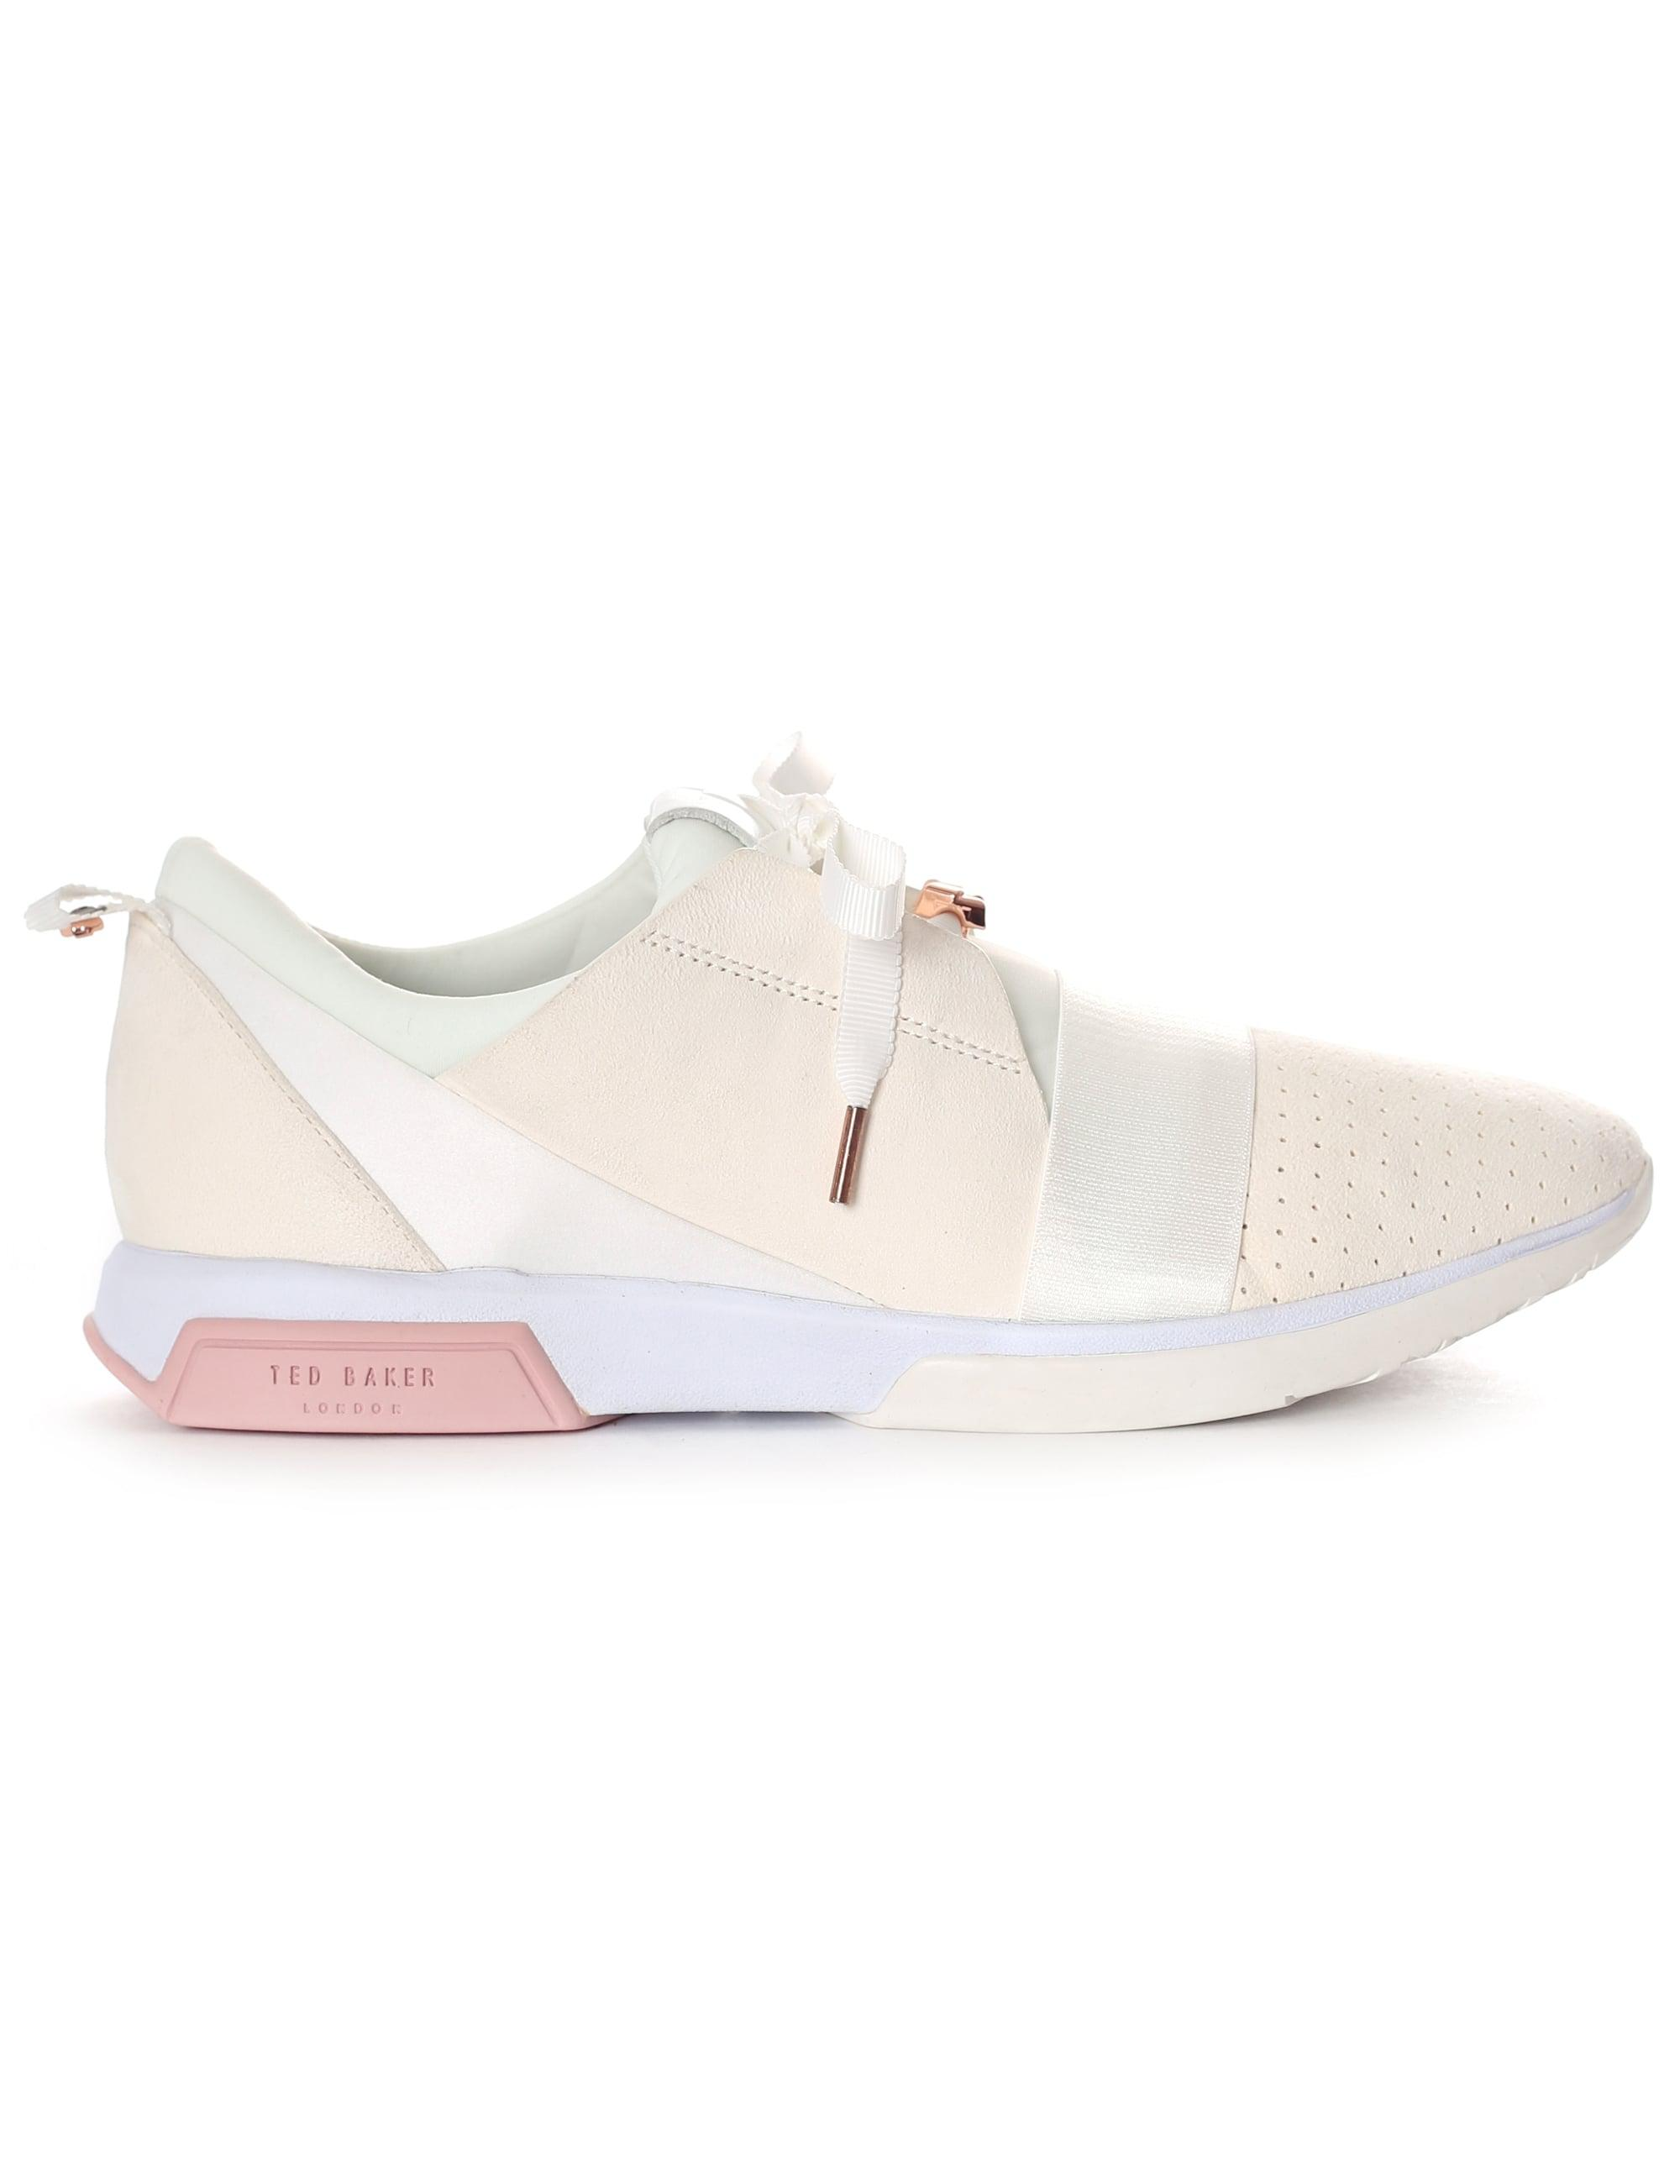 31dd64c48db1dc Ted Baker Cepas Strap Detail Suede Trim Trainers in White - Lyst